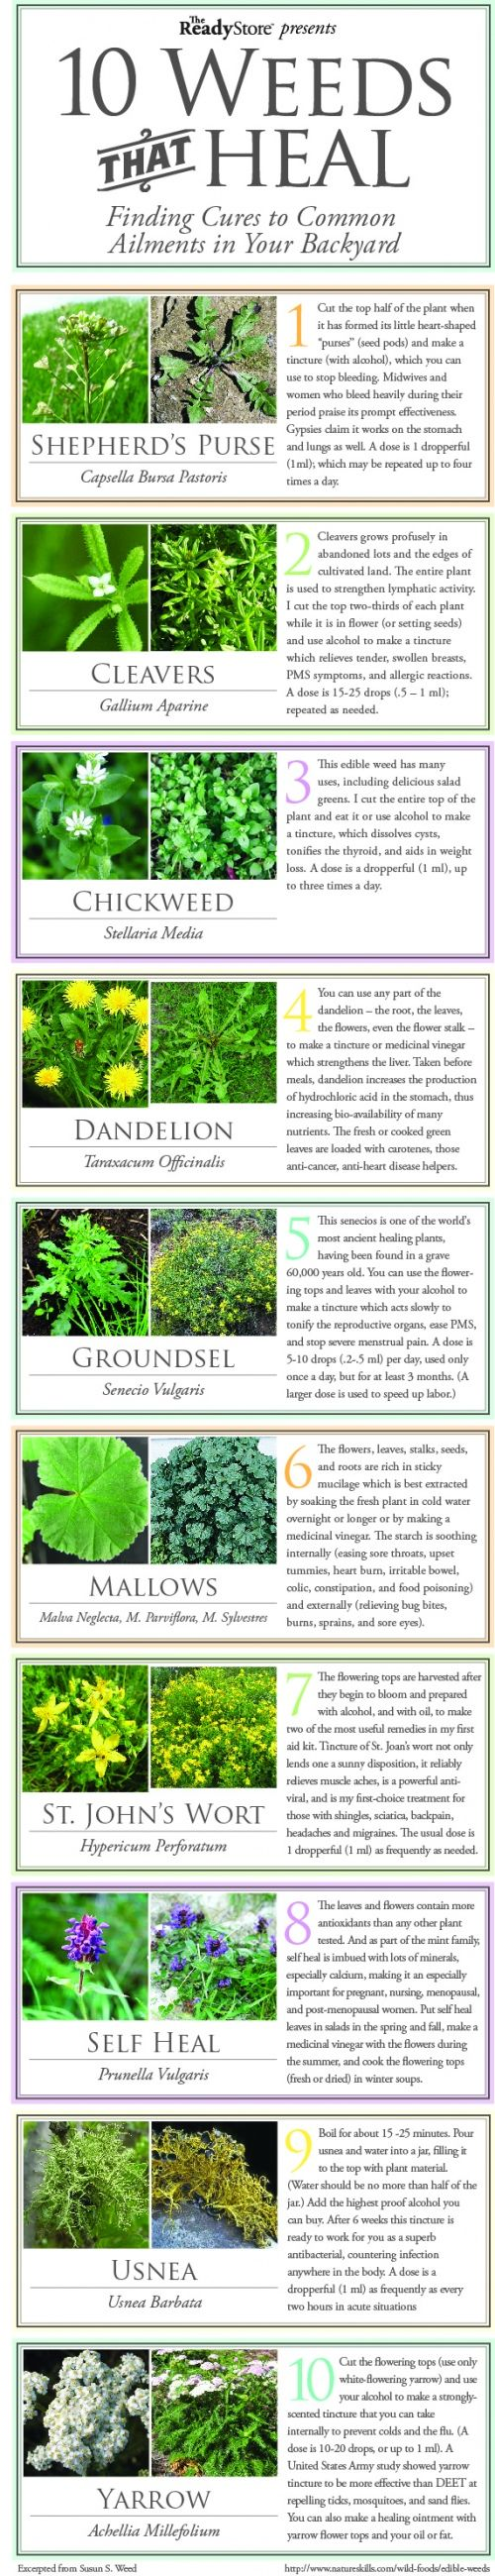 10 weeds that heal.